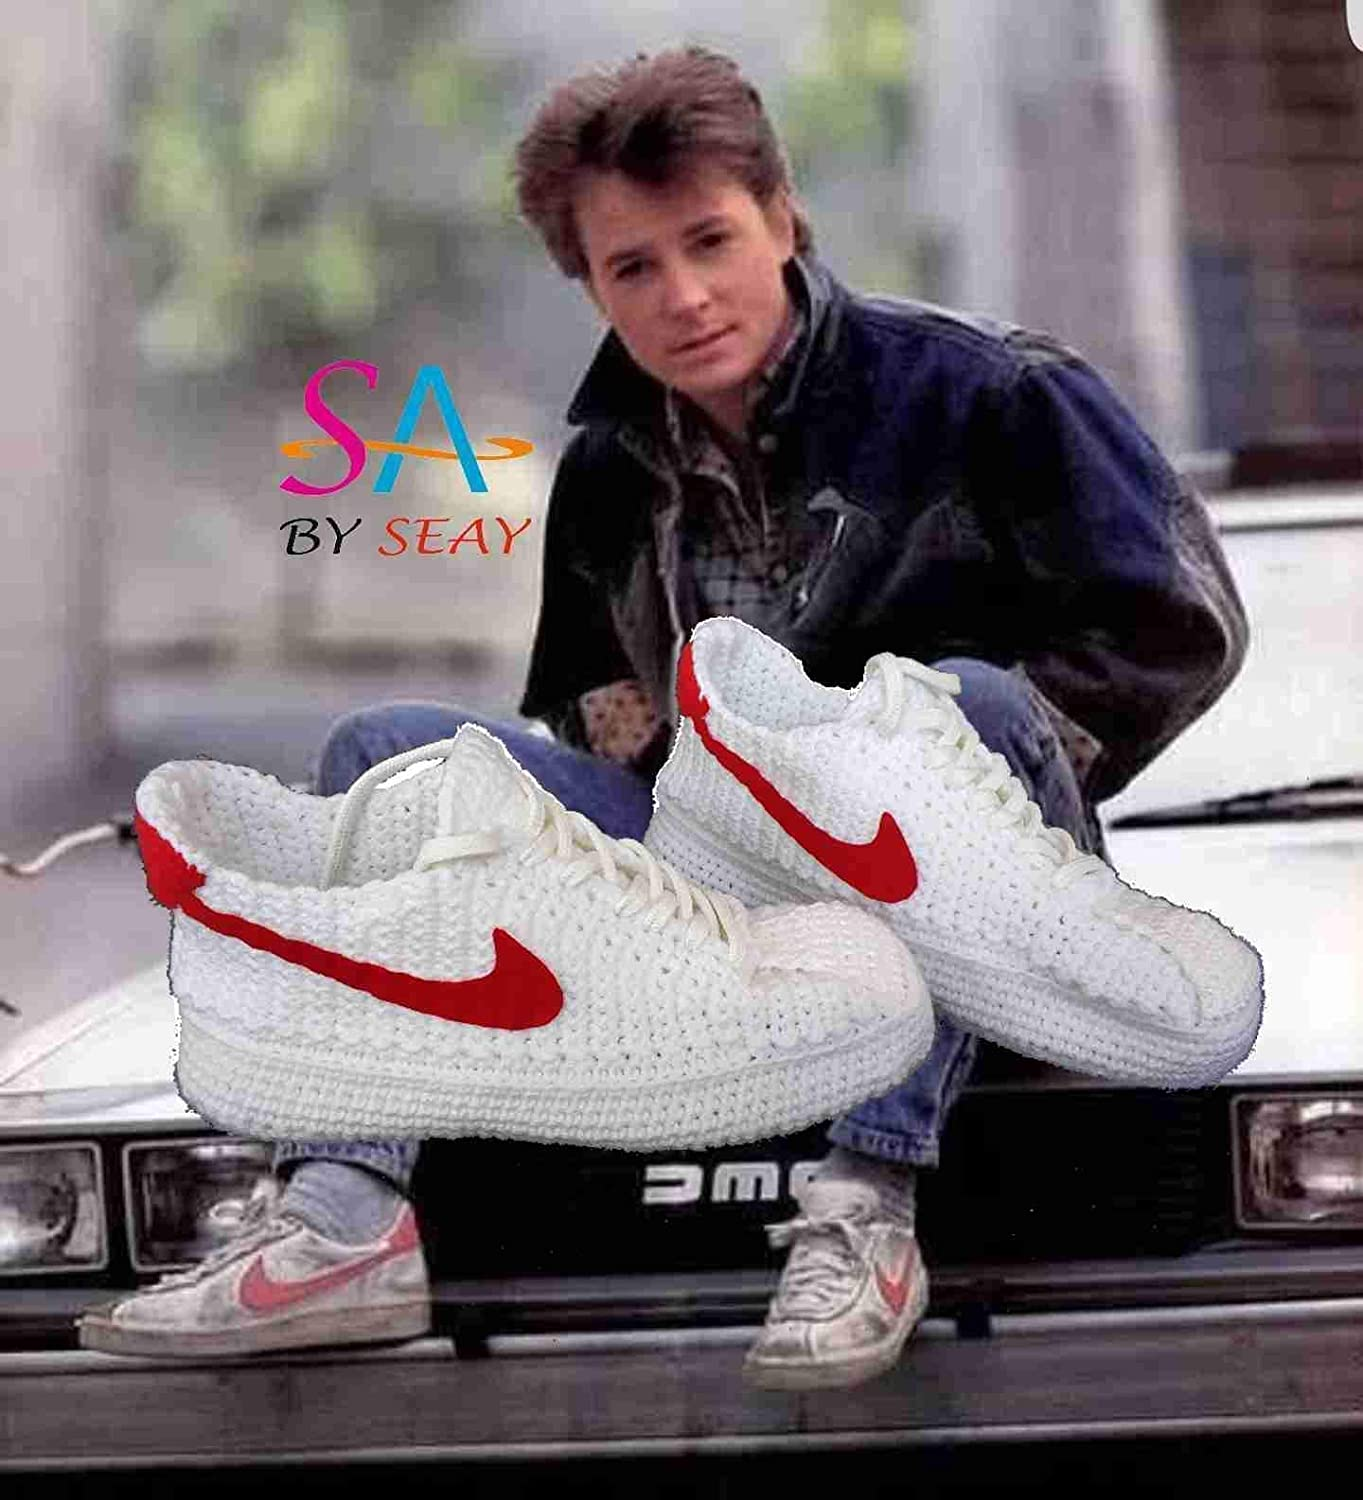 marty mcfly high tops Shop Clothing